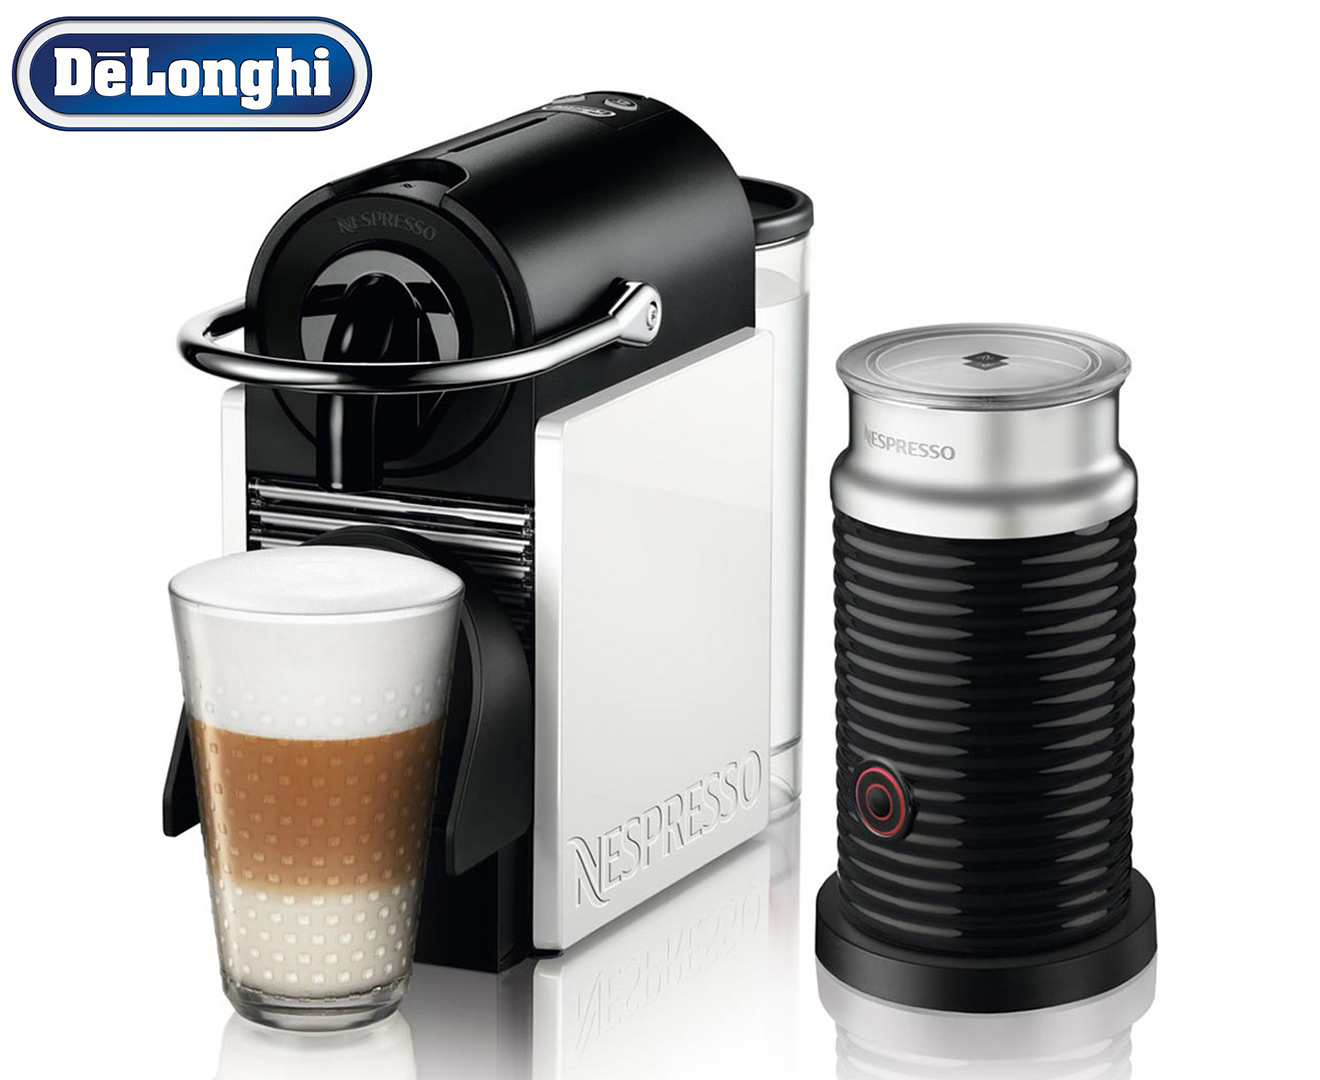 The Nespresso Club delivers to the address of your choice within Australia and offers a range of delivery options. Delivery options: Standard Delivery with Australia Post: Standard Delivery is $AUD. Enjoy free Standard Delivery on orders of capsules or more.